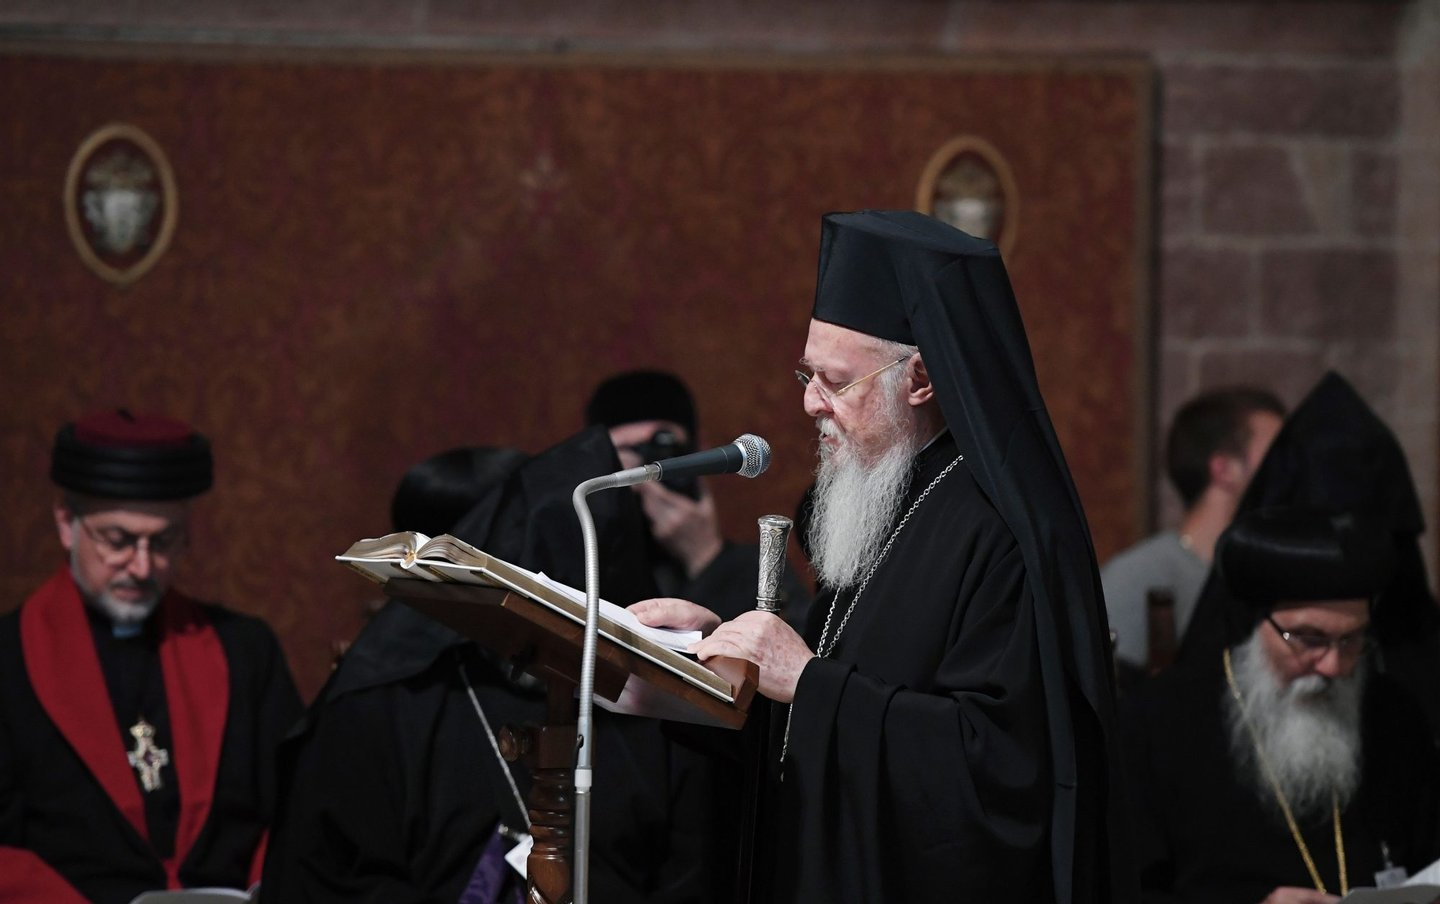 Orthodox Patriarch of Constantinople Bartholomew I prays together with representatives from different religious traditions in the St Francis basilica in Assisi on September 20, 2016. Pope Francis denounced those who wage war in the name of God, as he met faith leaders and victims of war to discuss growing religious fanaticism and escalating violence around the world. The annual World Day of Prayer event, established by John Paul II 30 years ago and held in the medieval town in central Italy, aims to combat the persecution of peoples for their faiths and extremism dressed up as religion. / AFP / TIZIANA FABI (Photo credit should read TIZIANA FABI/AFP/Getty Images)